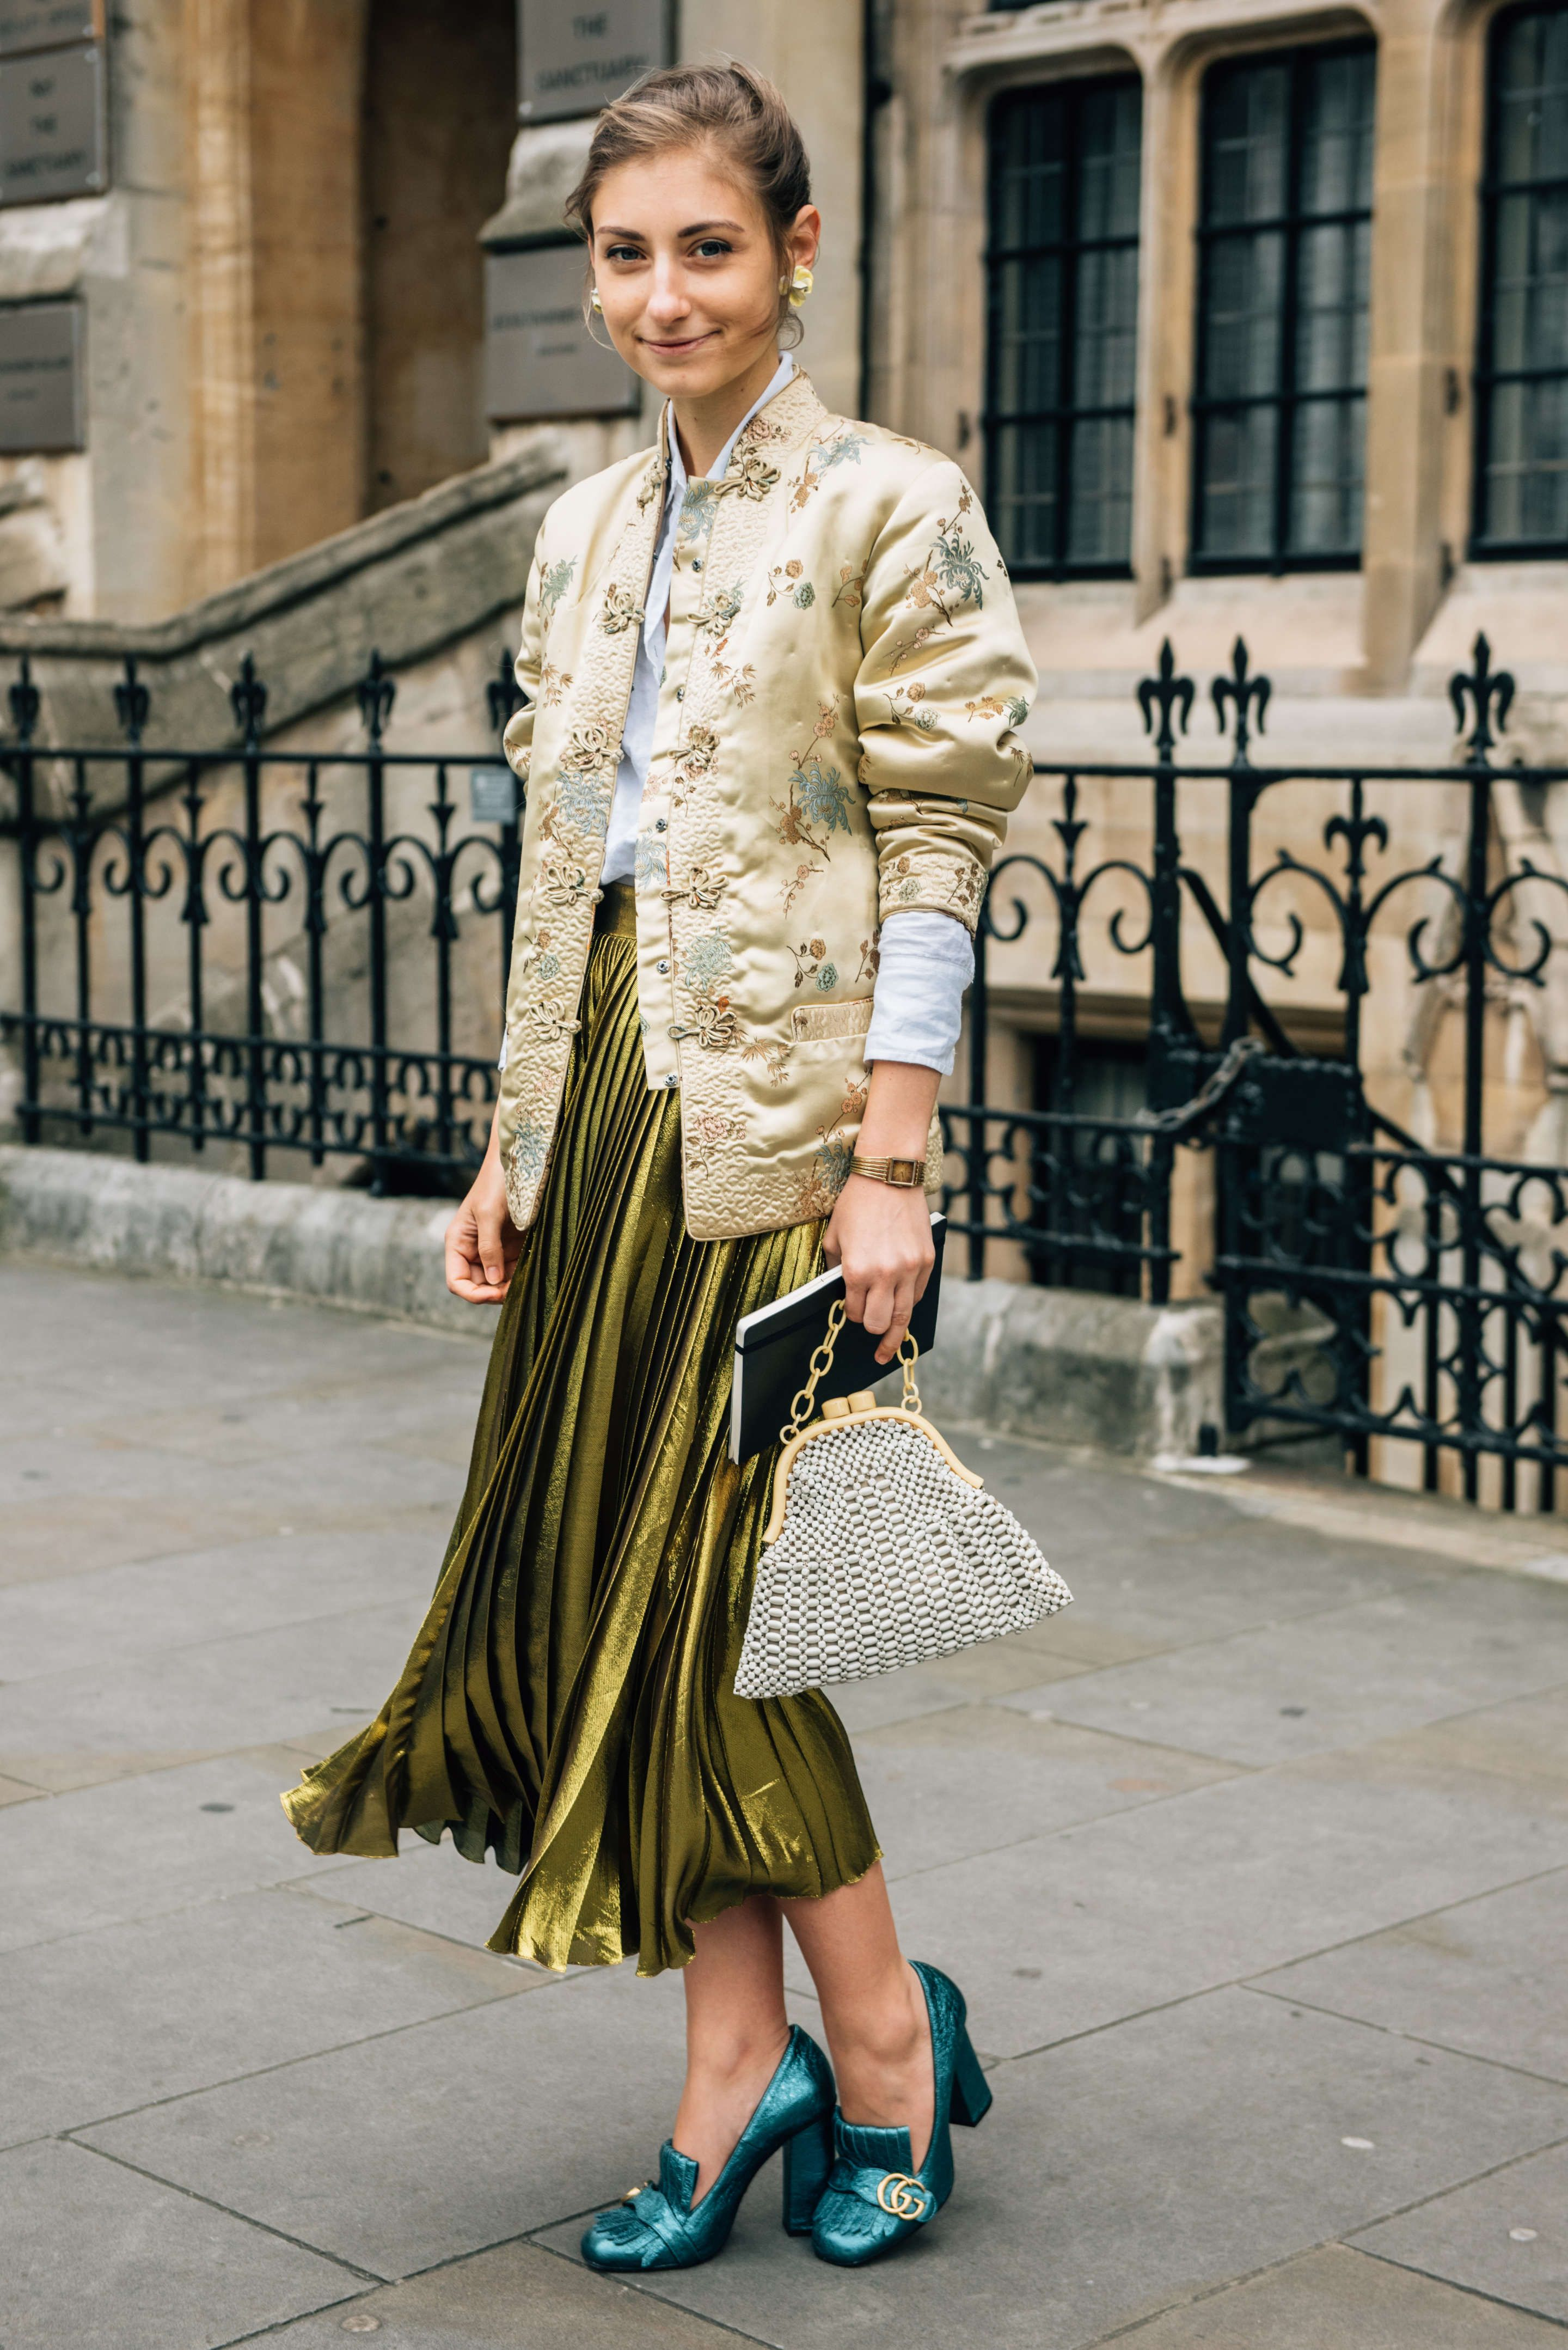 Fashion week Fashion College Street Style Roundup: June for lady